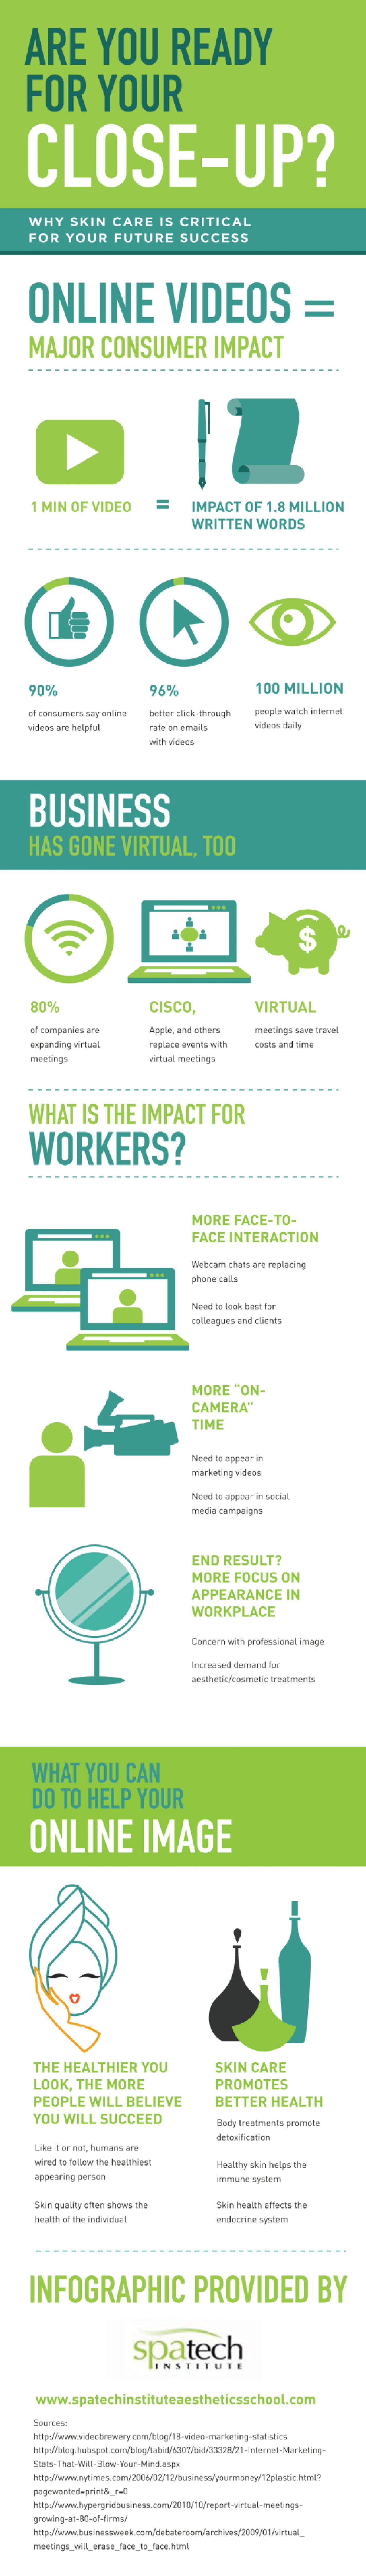 Are You Ready for Your Close-Up? Why Skin Care Is Critical for Your Future Success Infographic